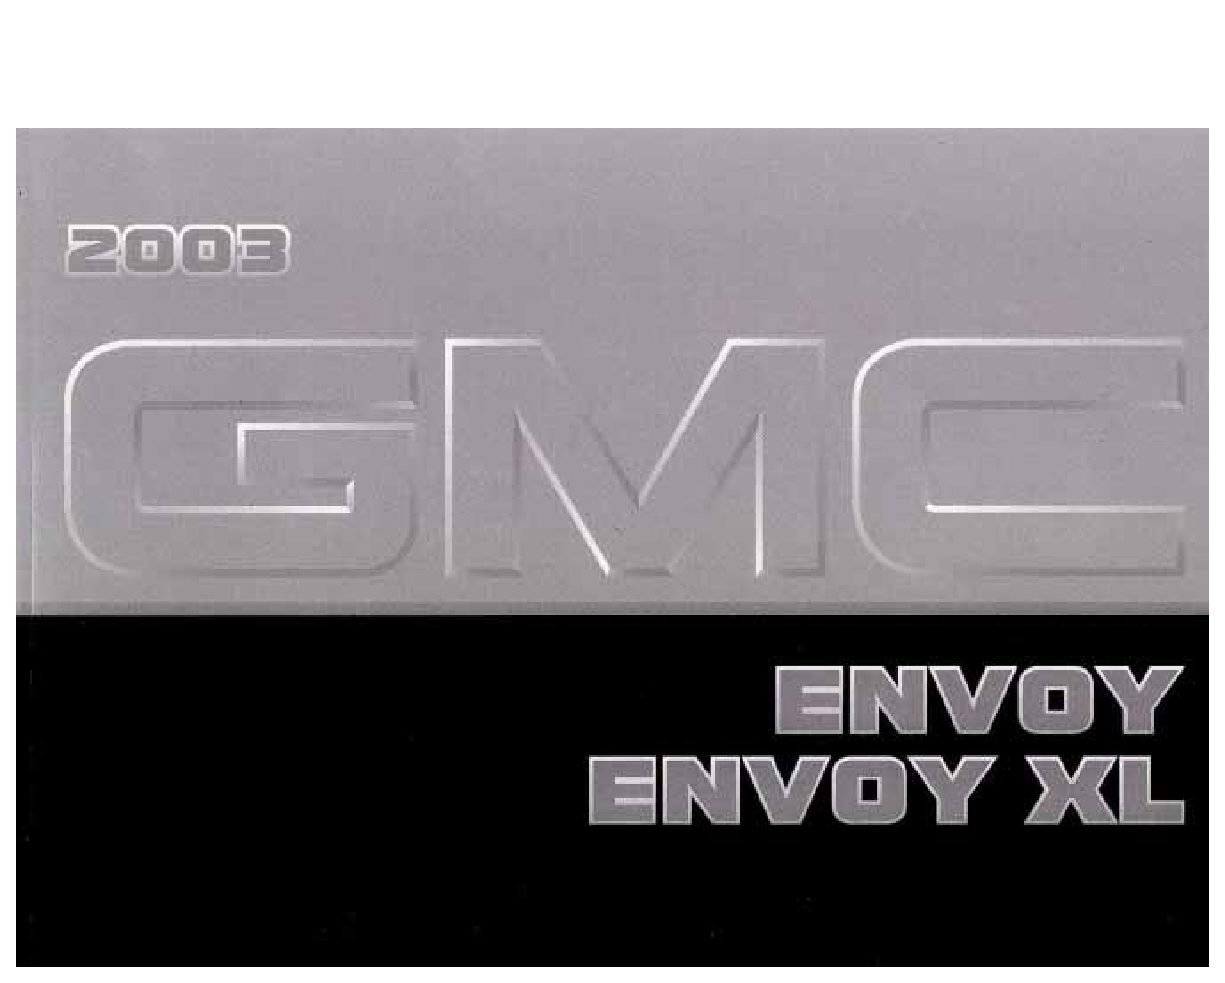 2003 gmc envoy owners manual just give me the damn manual rh justgivemethedamnmanual com 2004 gmc envoy xl manual 2003 gmc envoy xl owners manual